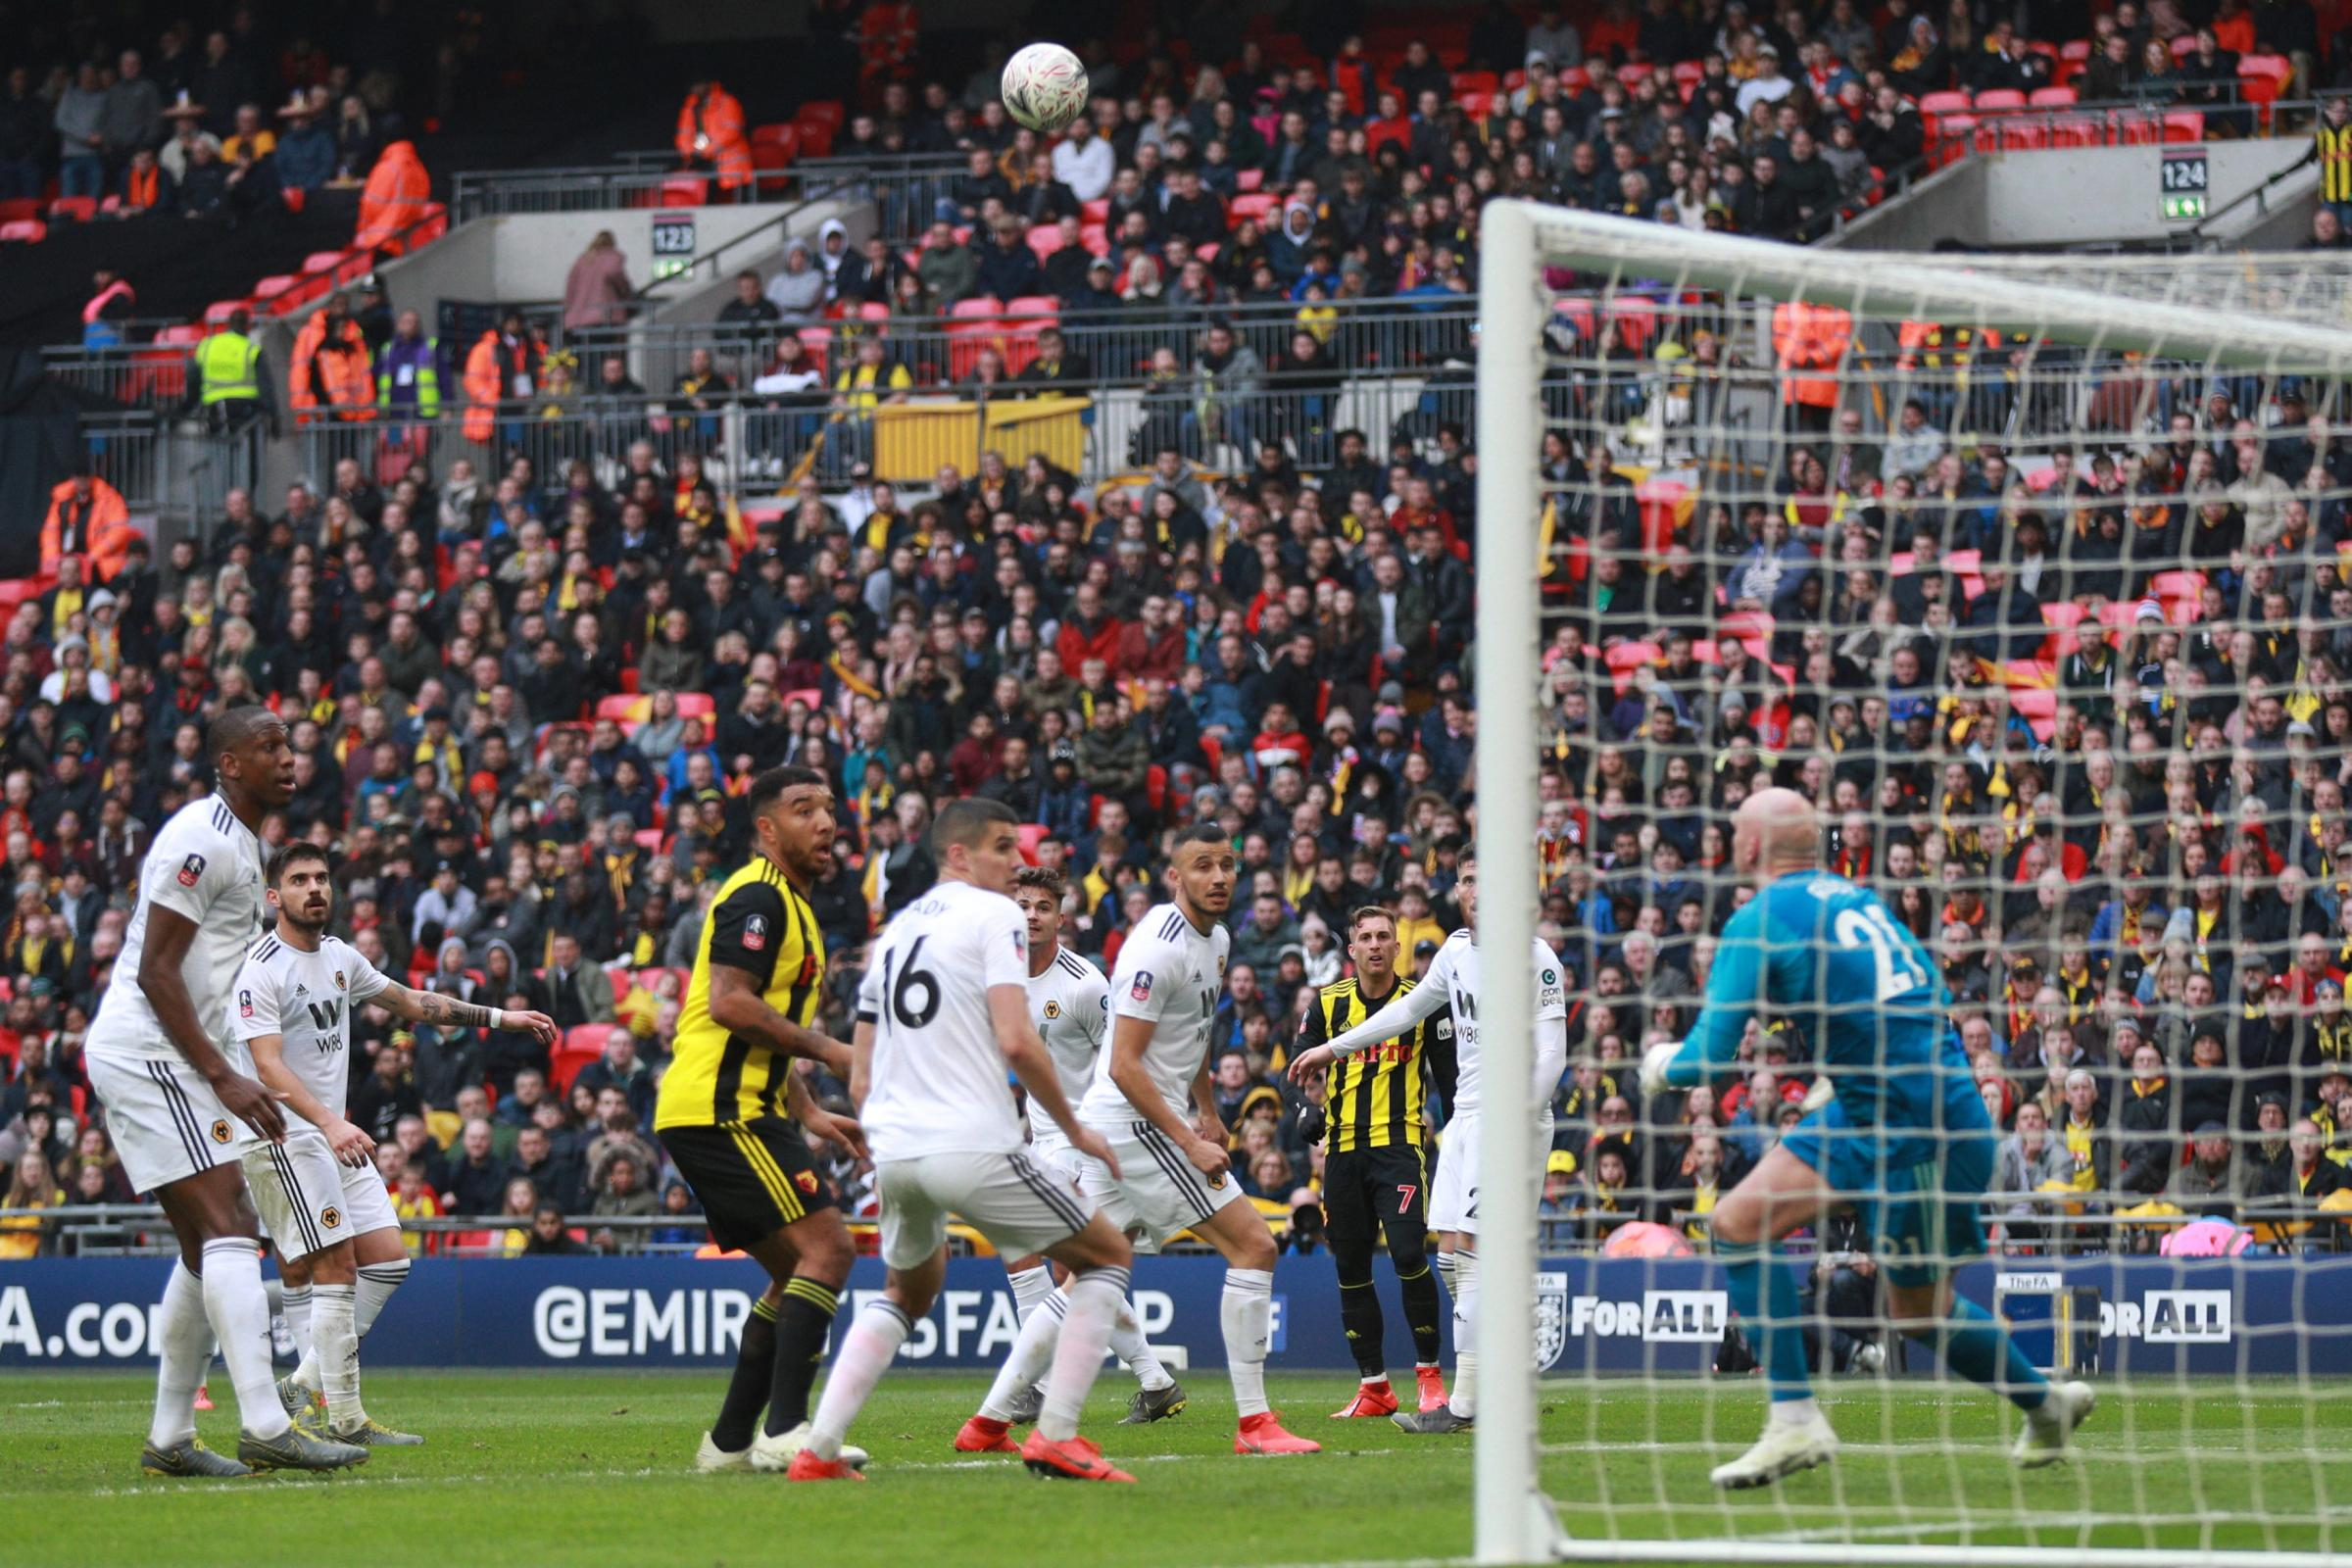 Deulofeu's goal in contention for best of FA Cup